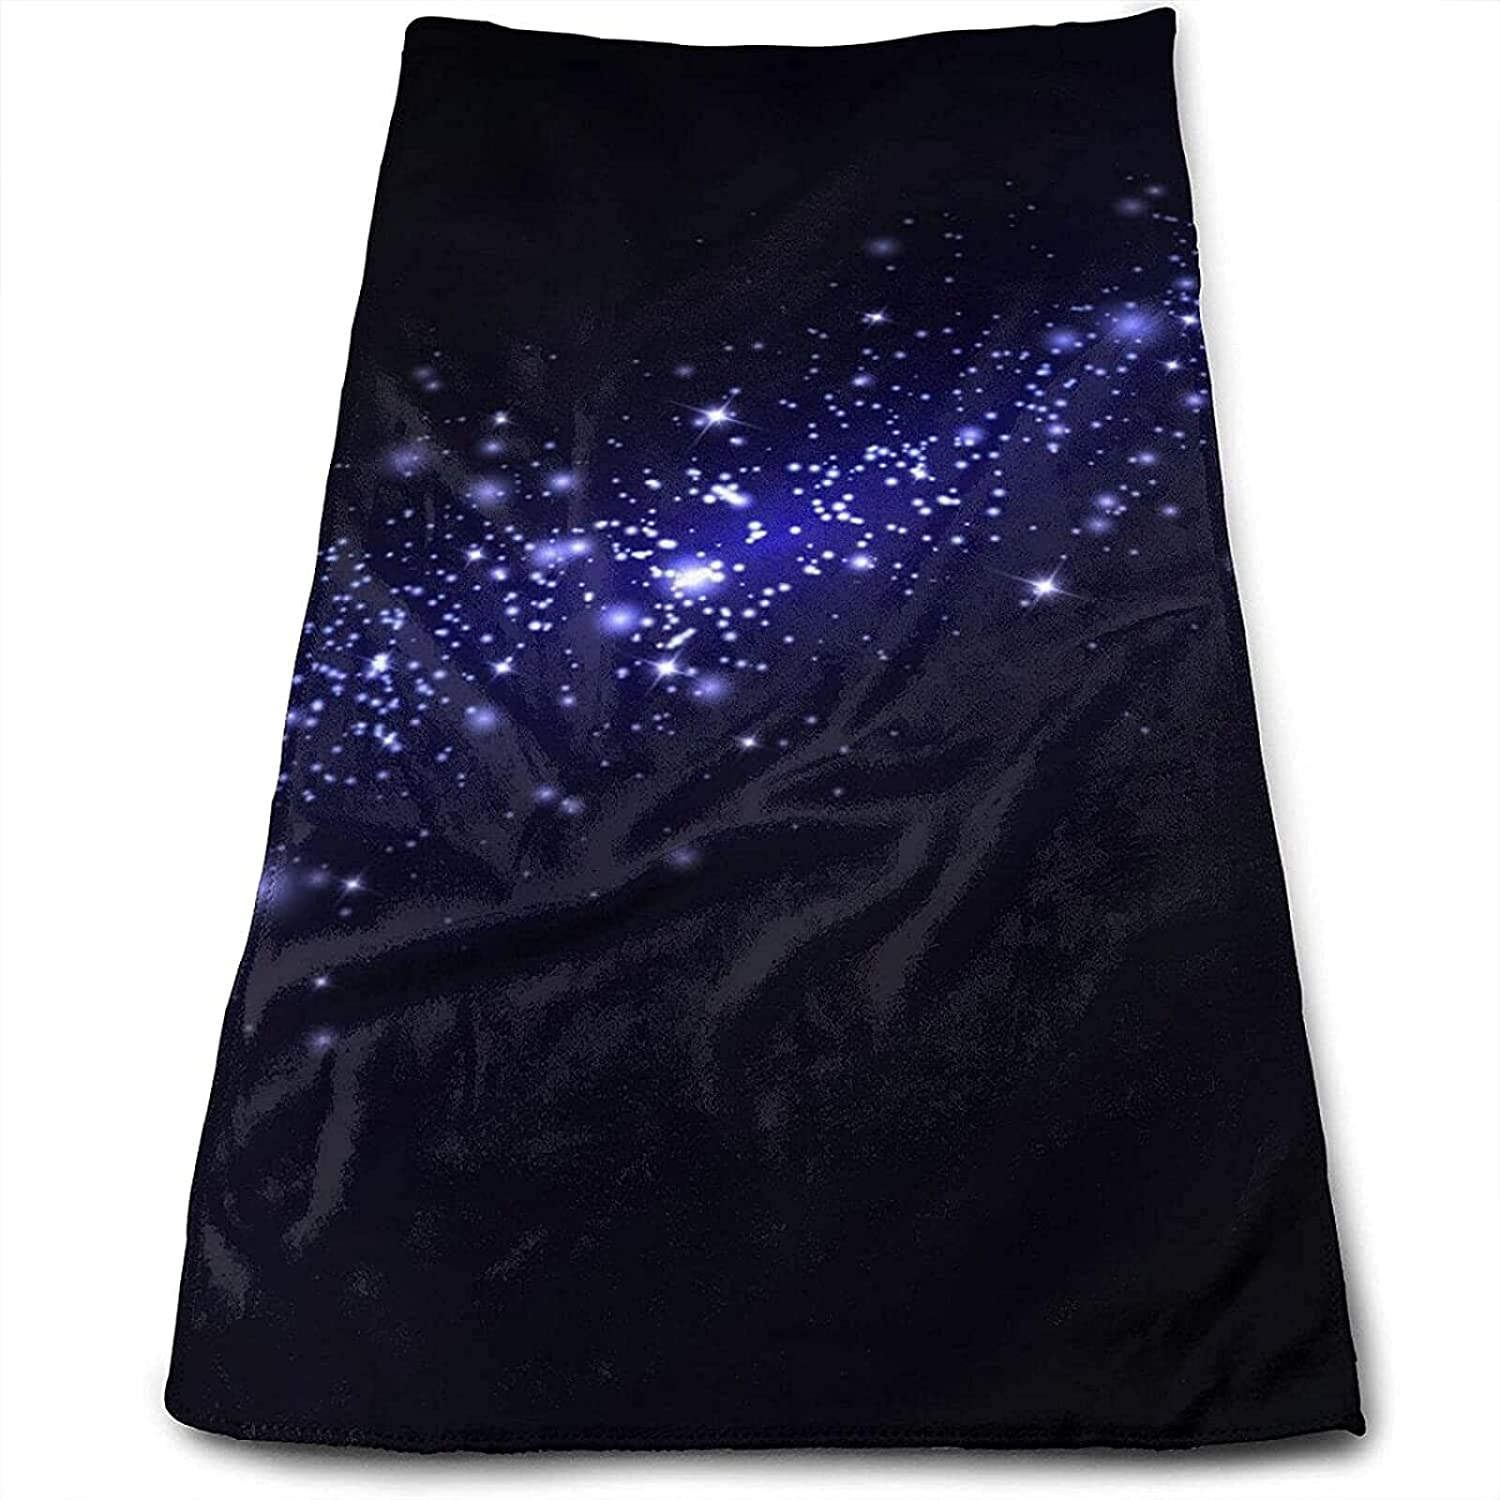 Epushow Flash Star Handkerchief for Space Handkerchief for Kitchen Handkerchief for Bathroom Soft Polyester Microfiber